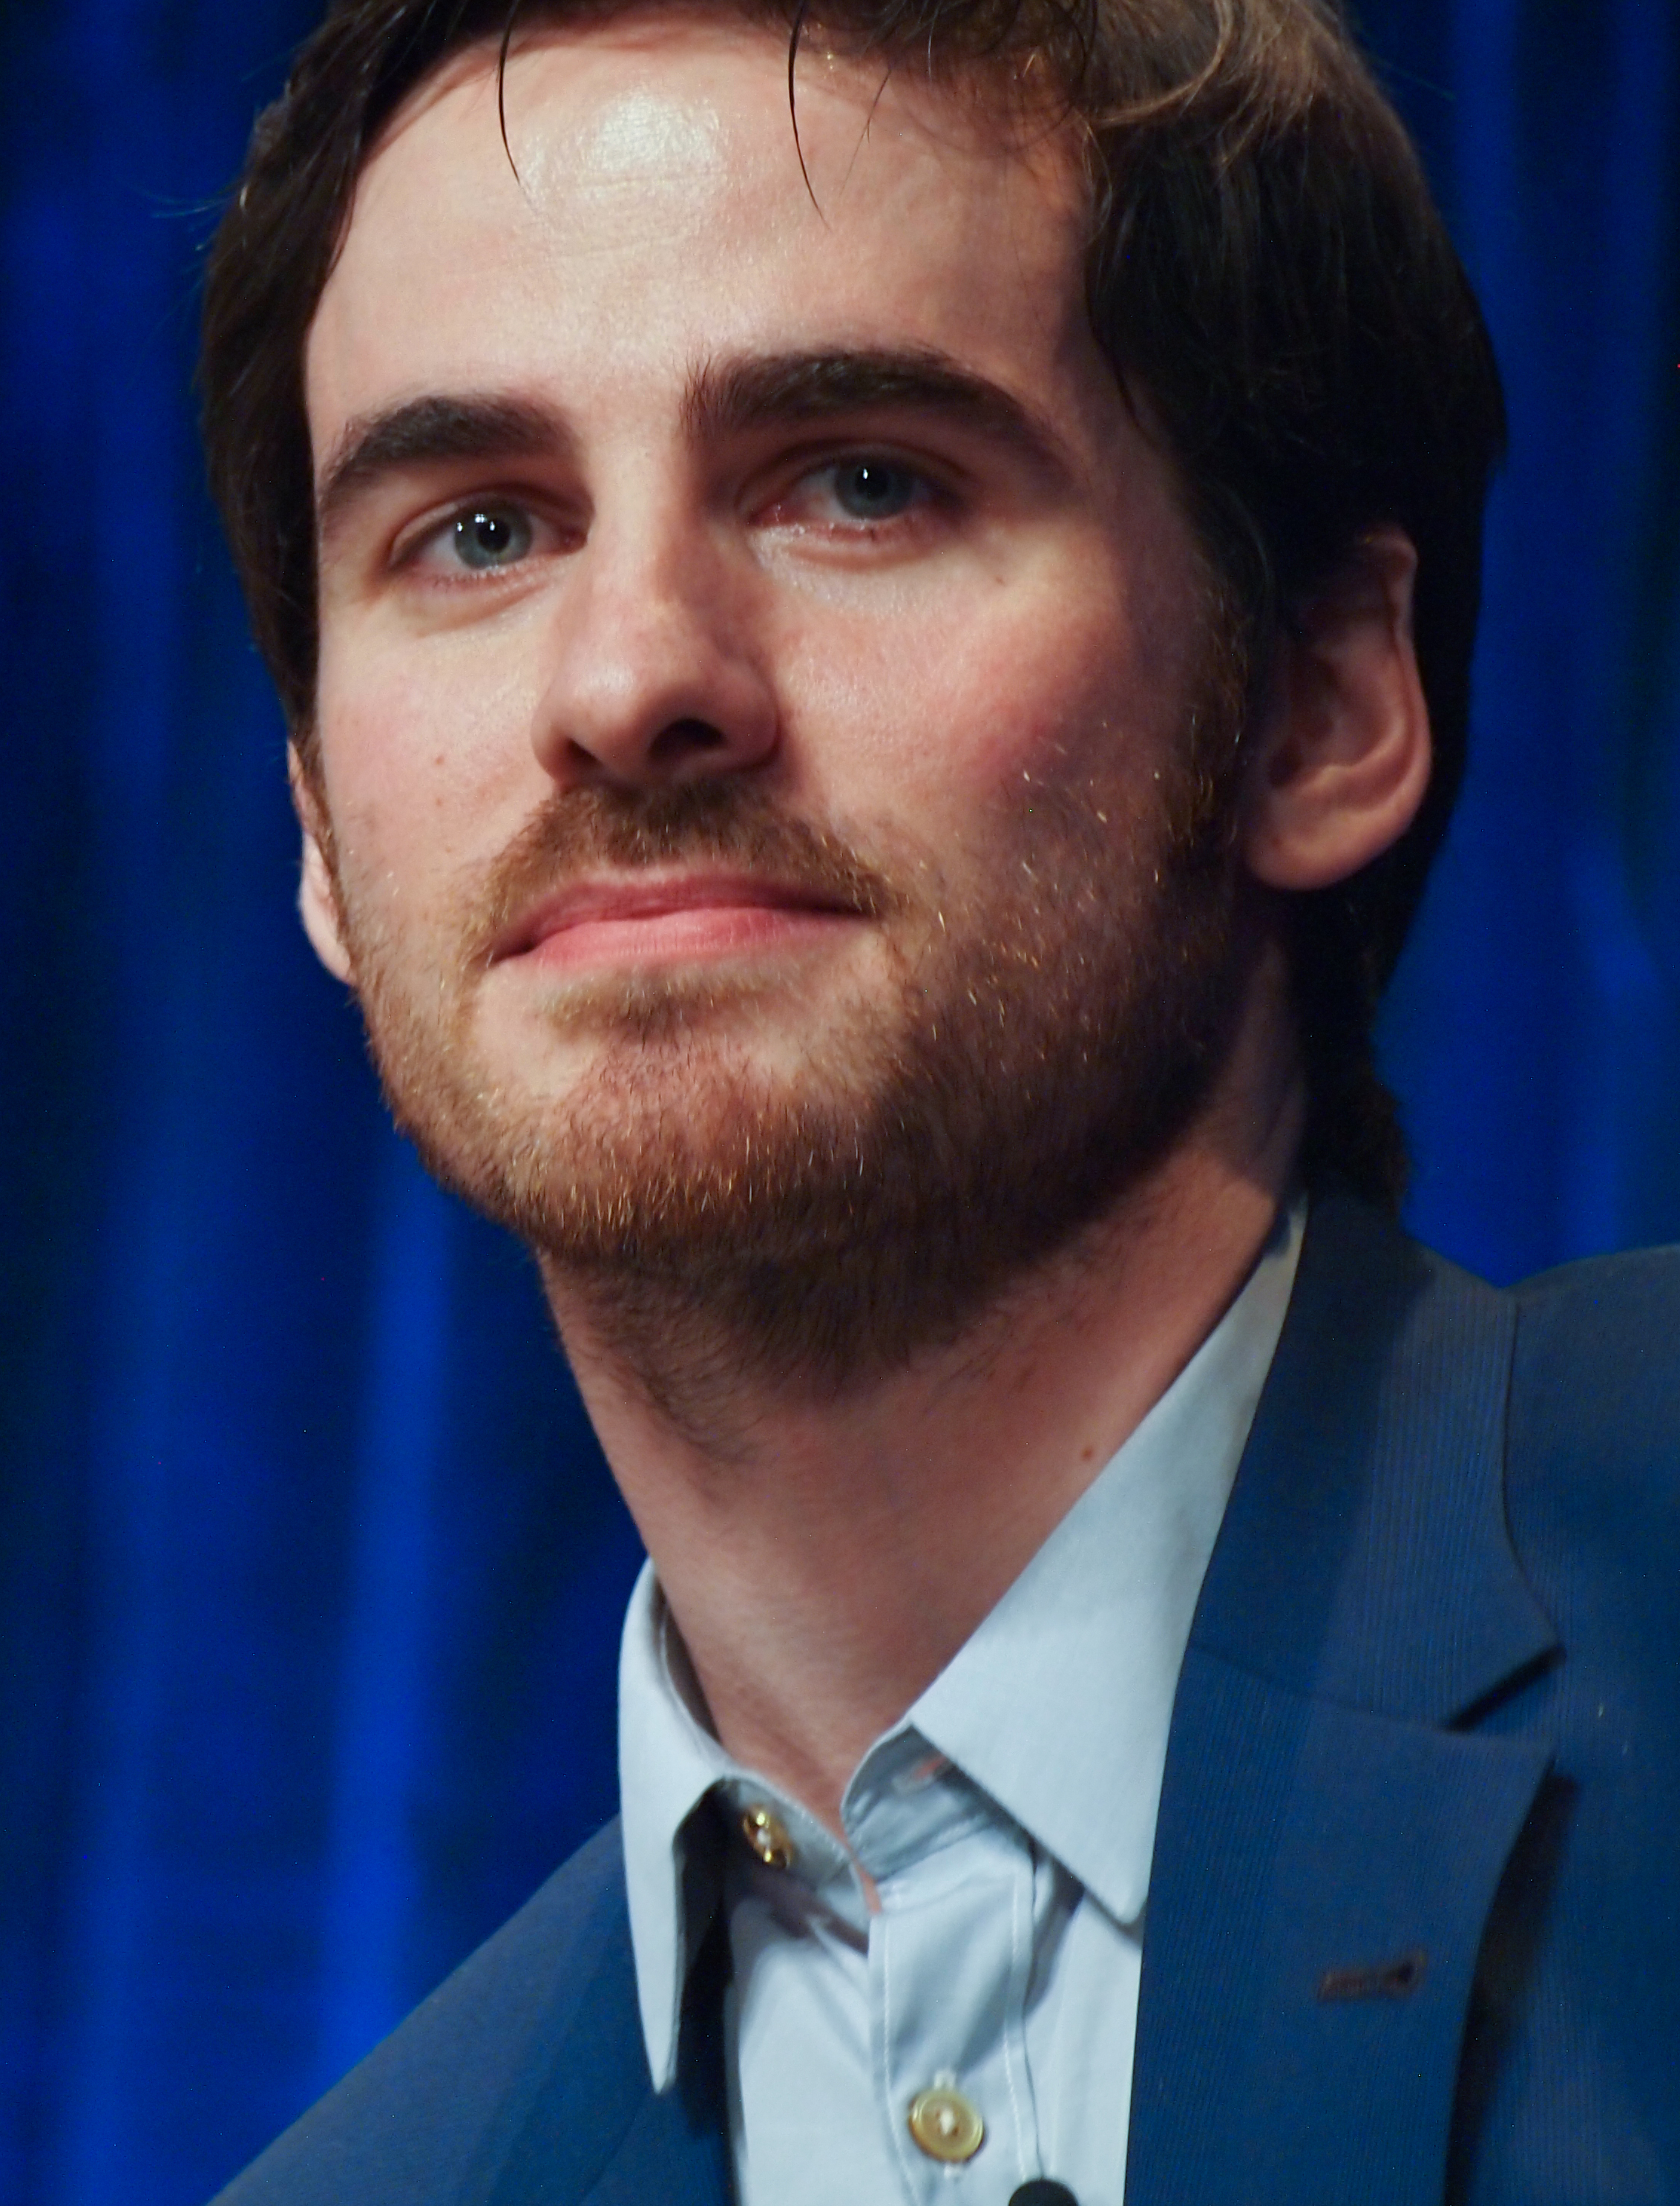 The 40-year old son of father (?) and mother(?) Colin O'Donoghue in 2021 photo. Colin O'Donoghue earned a  million dollar salary - leaving the net worth at  million in 2021